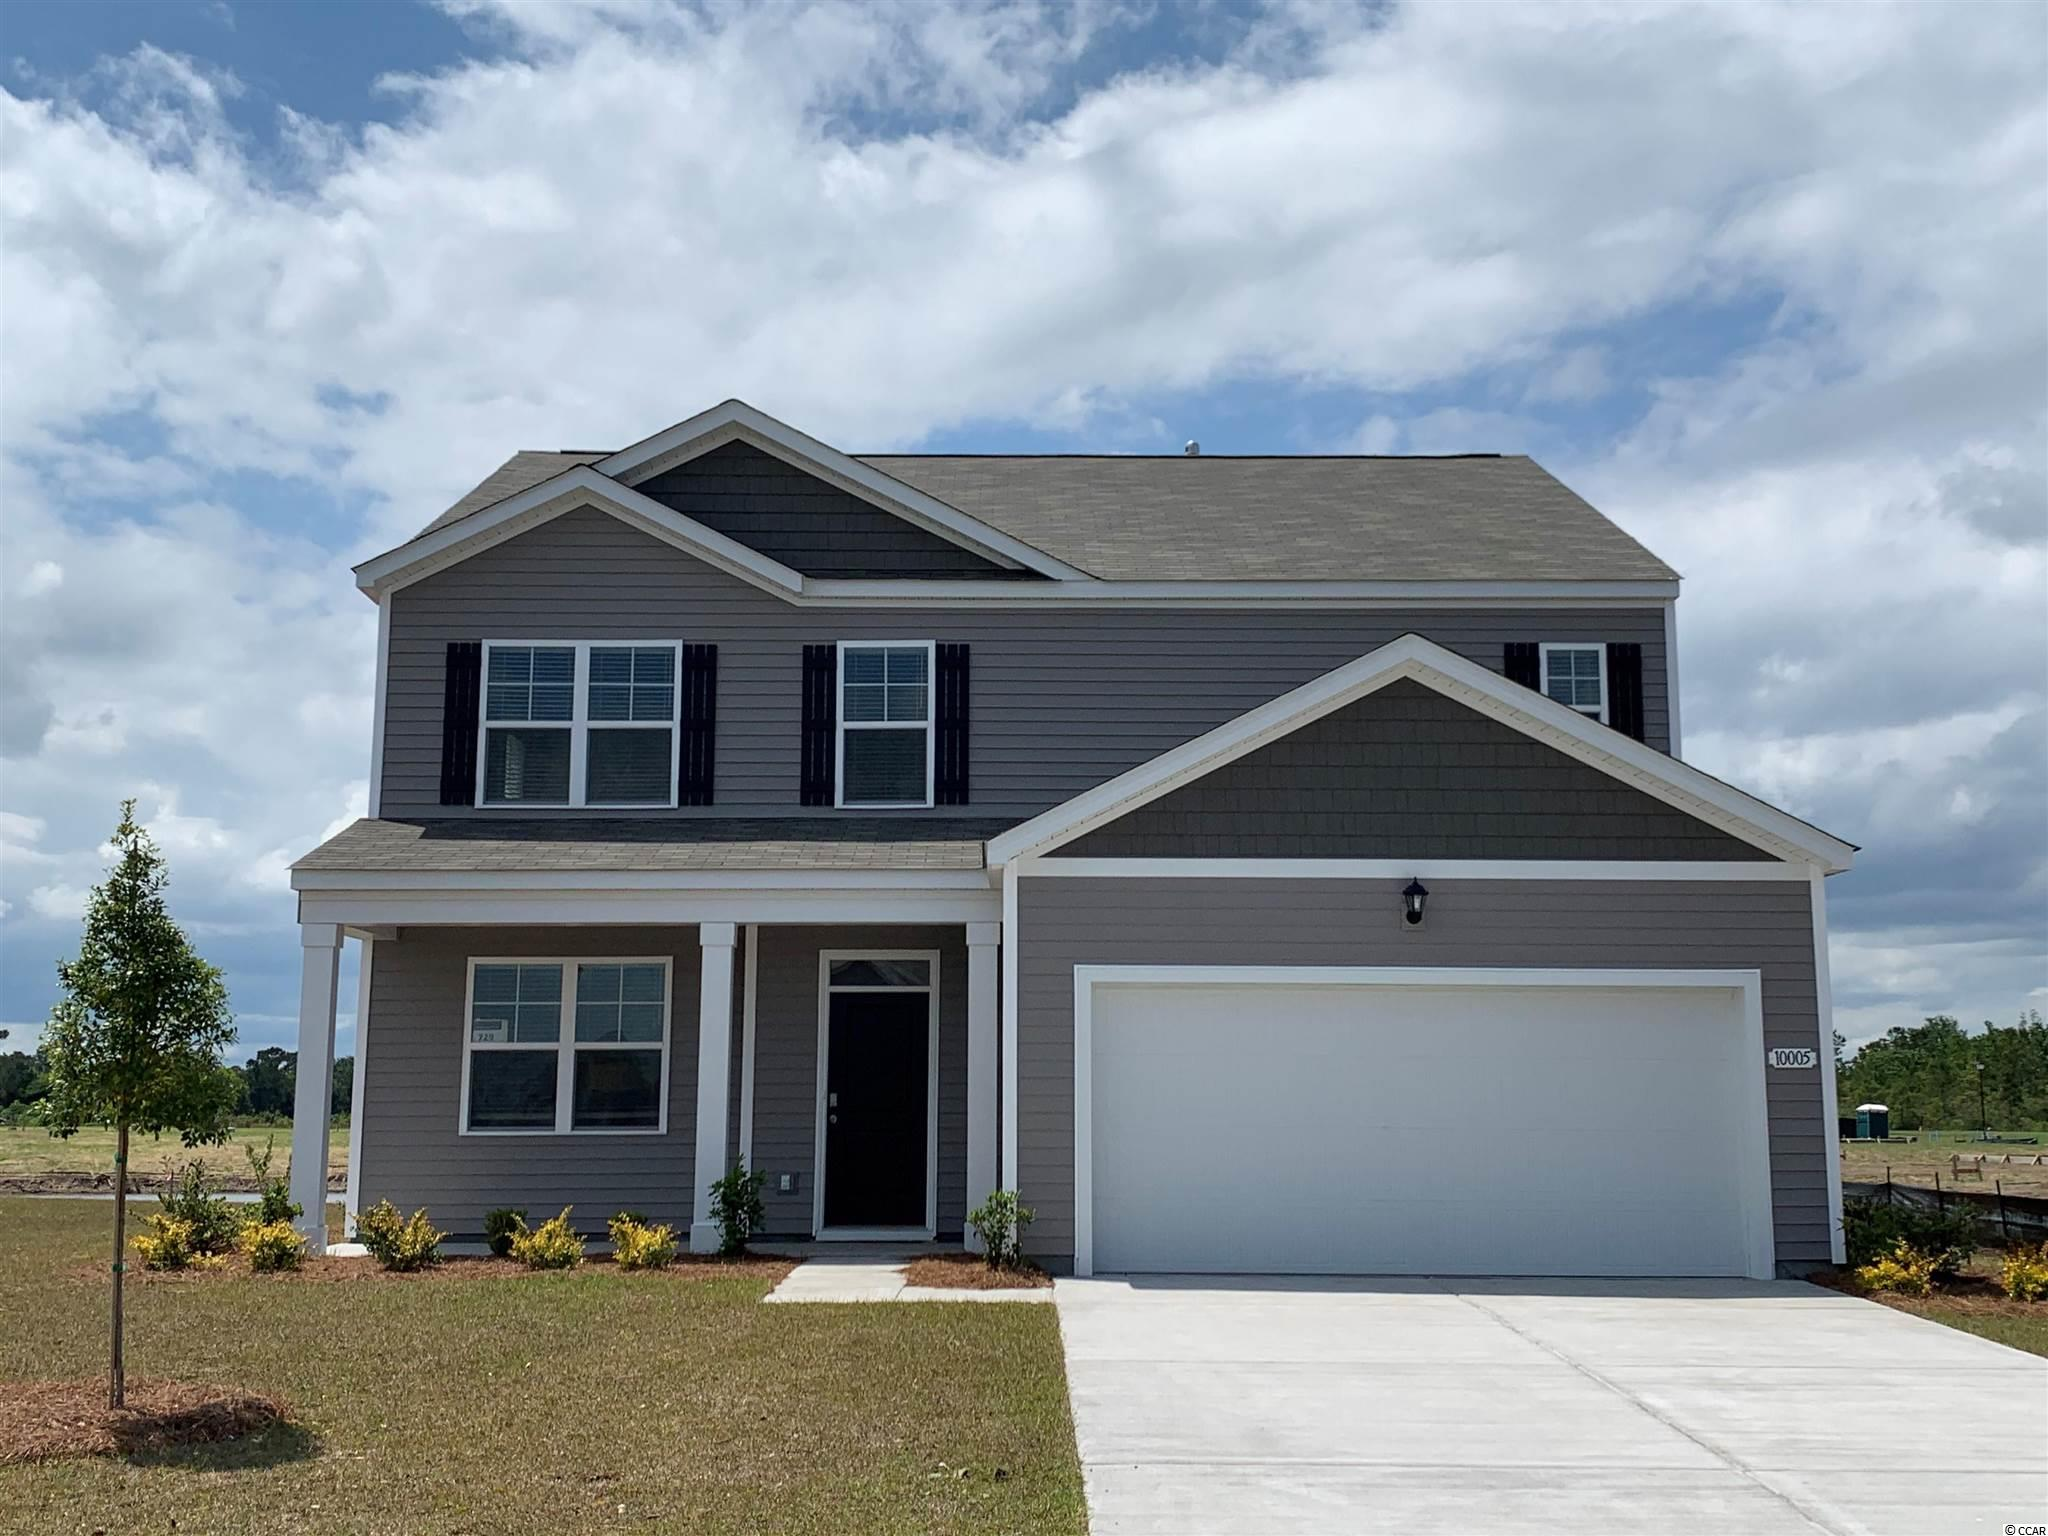 "The Elle is a brand new floor plan that has never been built in Carolina Forest! This home is oversized with plenty of room for everyone. Upon entry is a study with French doors that could be a great home office, game room, or even a formal dining room. The great room layout is wide open with sliding glass doors leading to the rear covered porch and patio. 36"" gray painted cabinetry, granite countertops,  stainless Whirlpool appliances, laminate wood flooring throughout the main living areas, and our industry leading smart home technology package all included! The primary bedroom on the first floor is very convenient, as well! The upstairs features four nicely sized bedrooms, two full bathrooms, the laundry room, and a versatile second floor living area!   *Photos and virtual tour are of a similar Elle home. (Home and community information, including pricing, included features, terms, availability and amenities, are subject to change prior to sale at any time without notice or obligation.  Square footages are approximate.  Pictures, photographs, colors, features, and sizes are for illustration purposes only and will vary from the homes as built.  Equal housing opportunity builder.)"